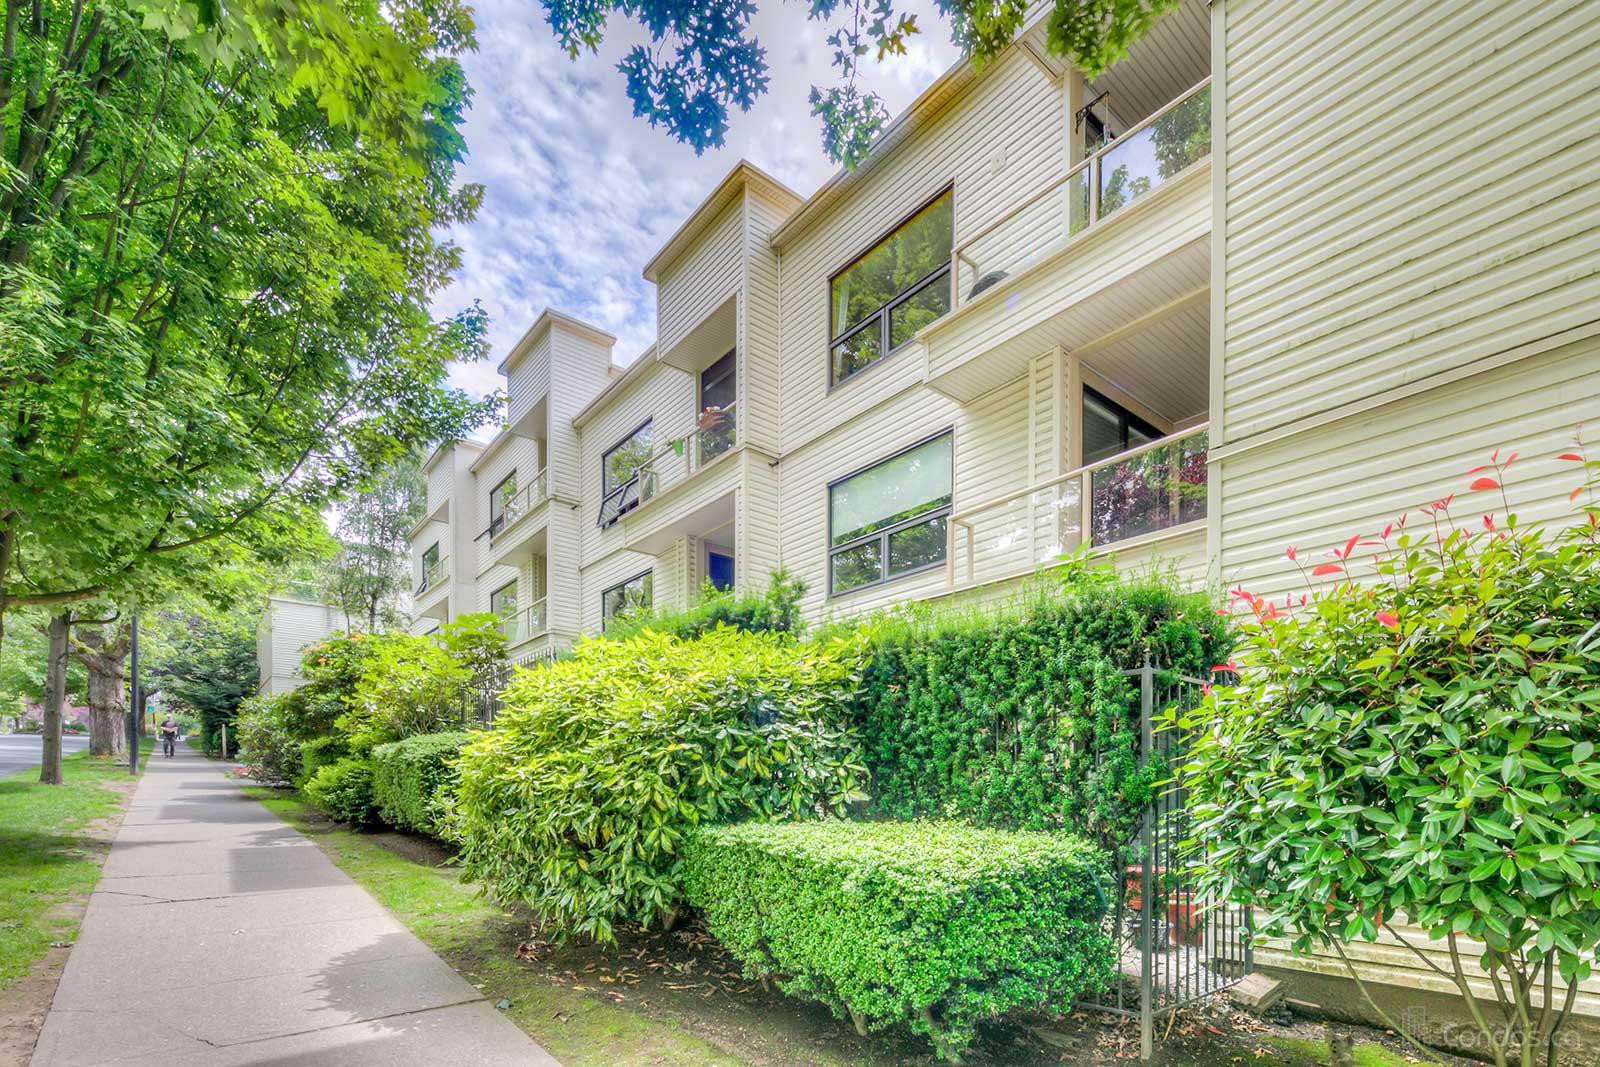 Tiffany Court at 1345 Comox St, Vancouver 1